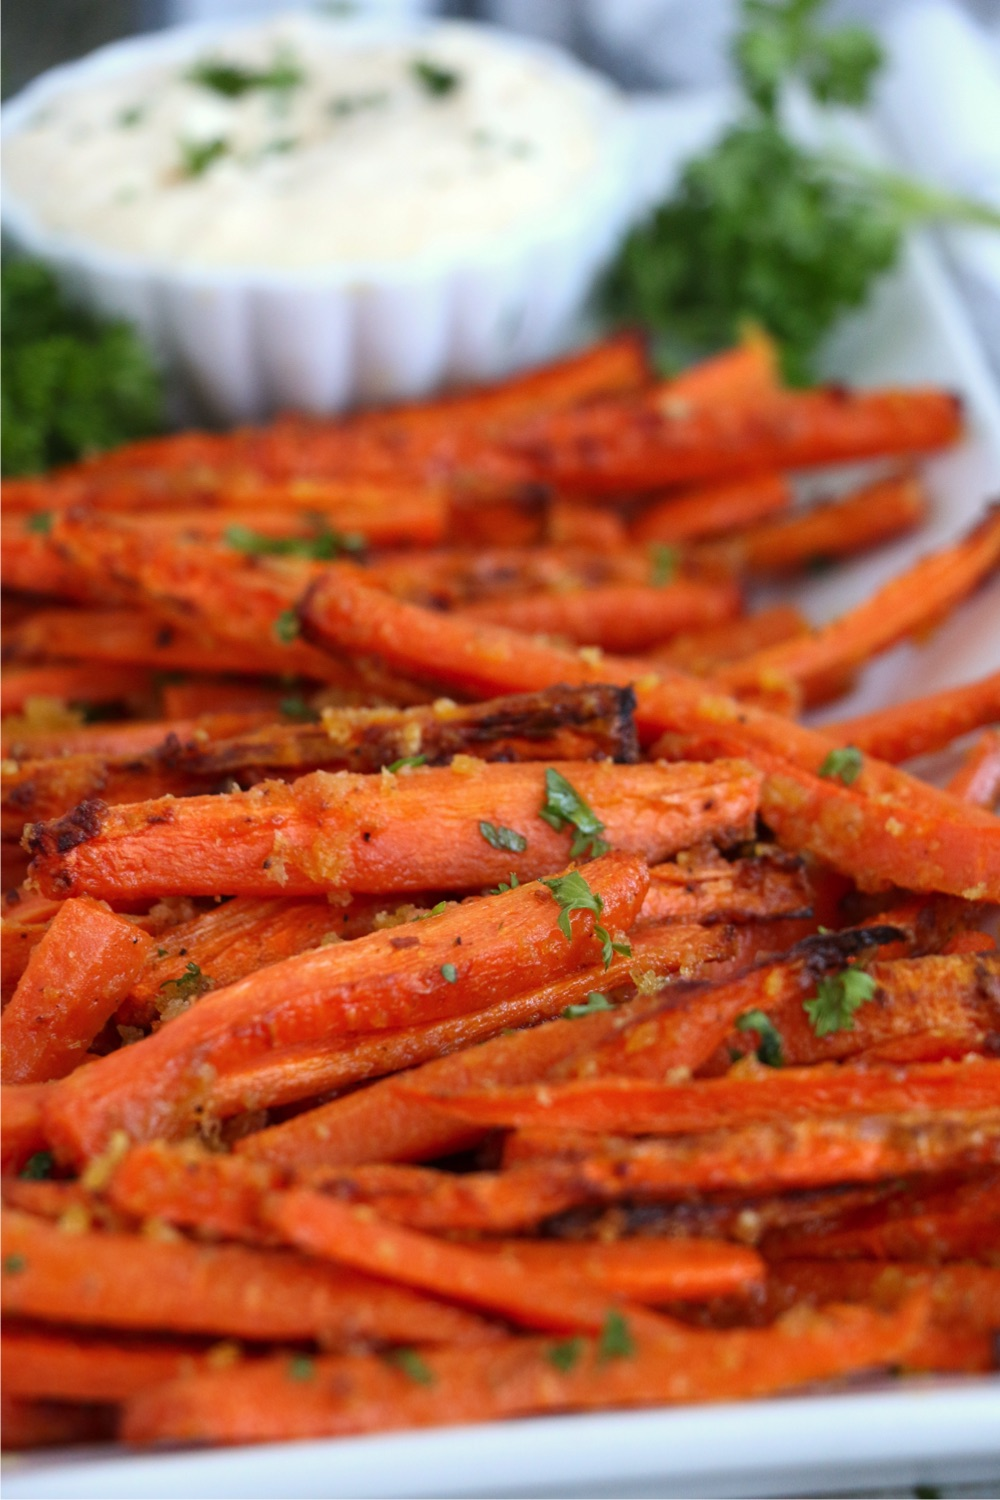 Close up of carrot fries on plate